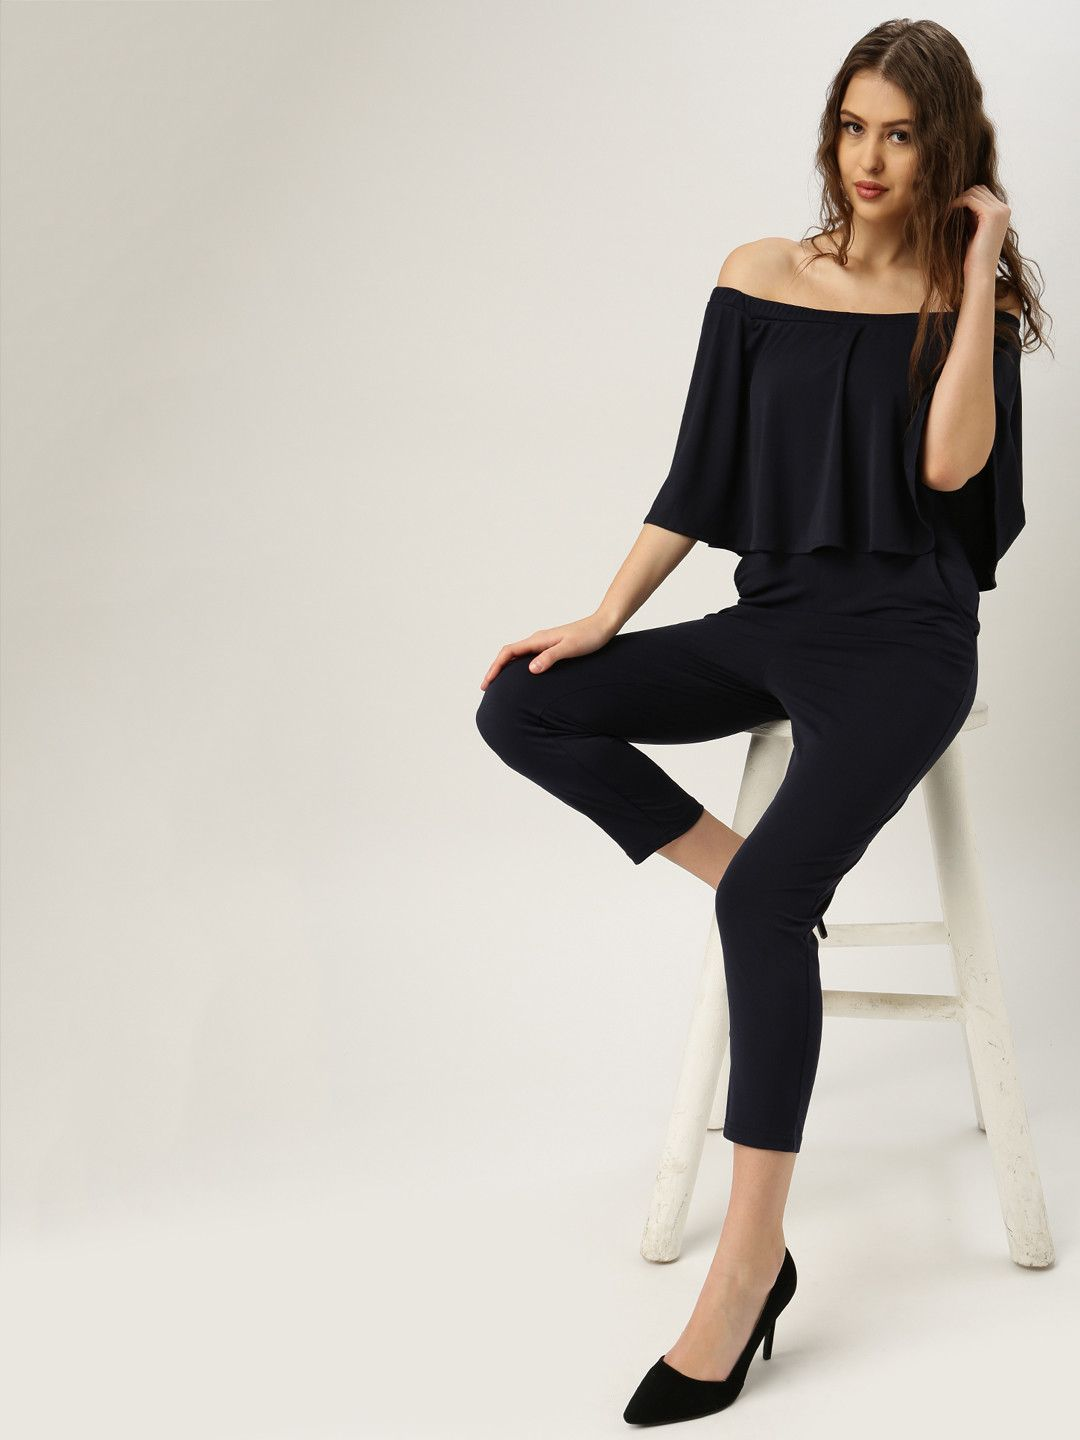 All About You From Deepika Padukone Navy Off Shoulder ...